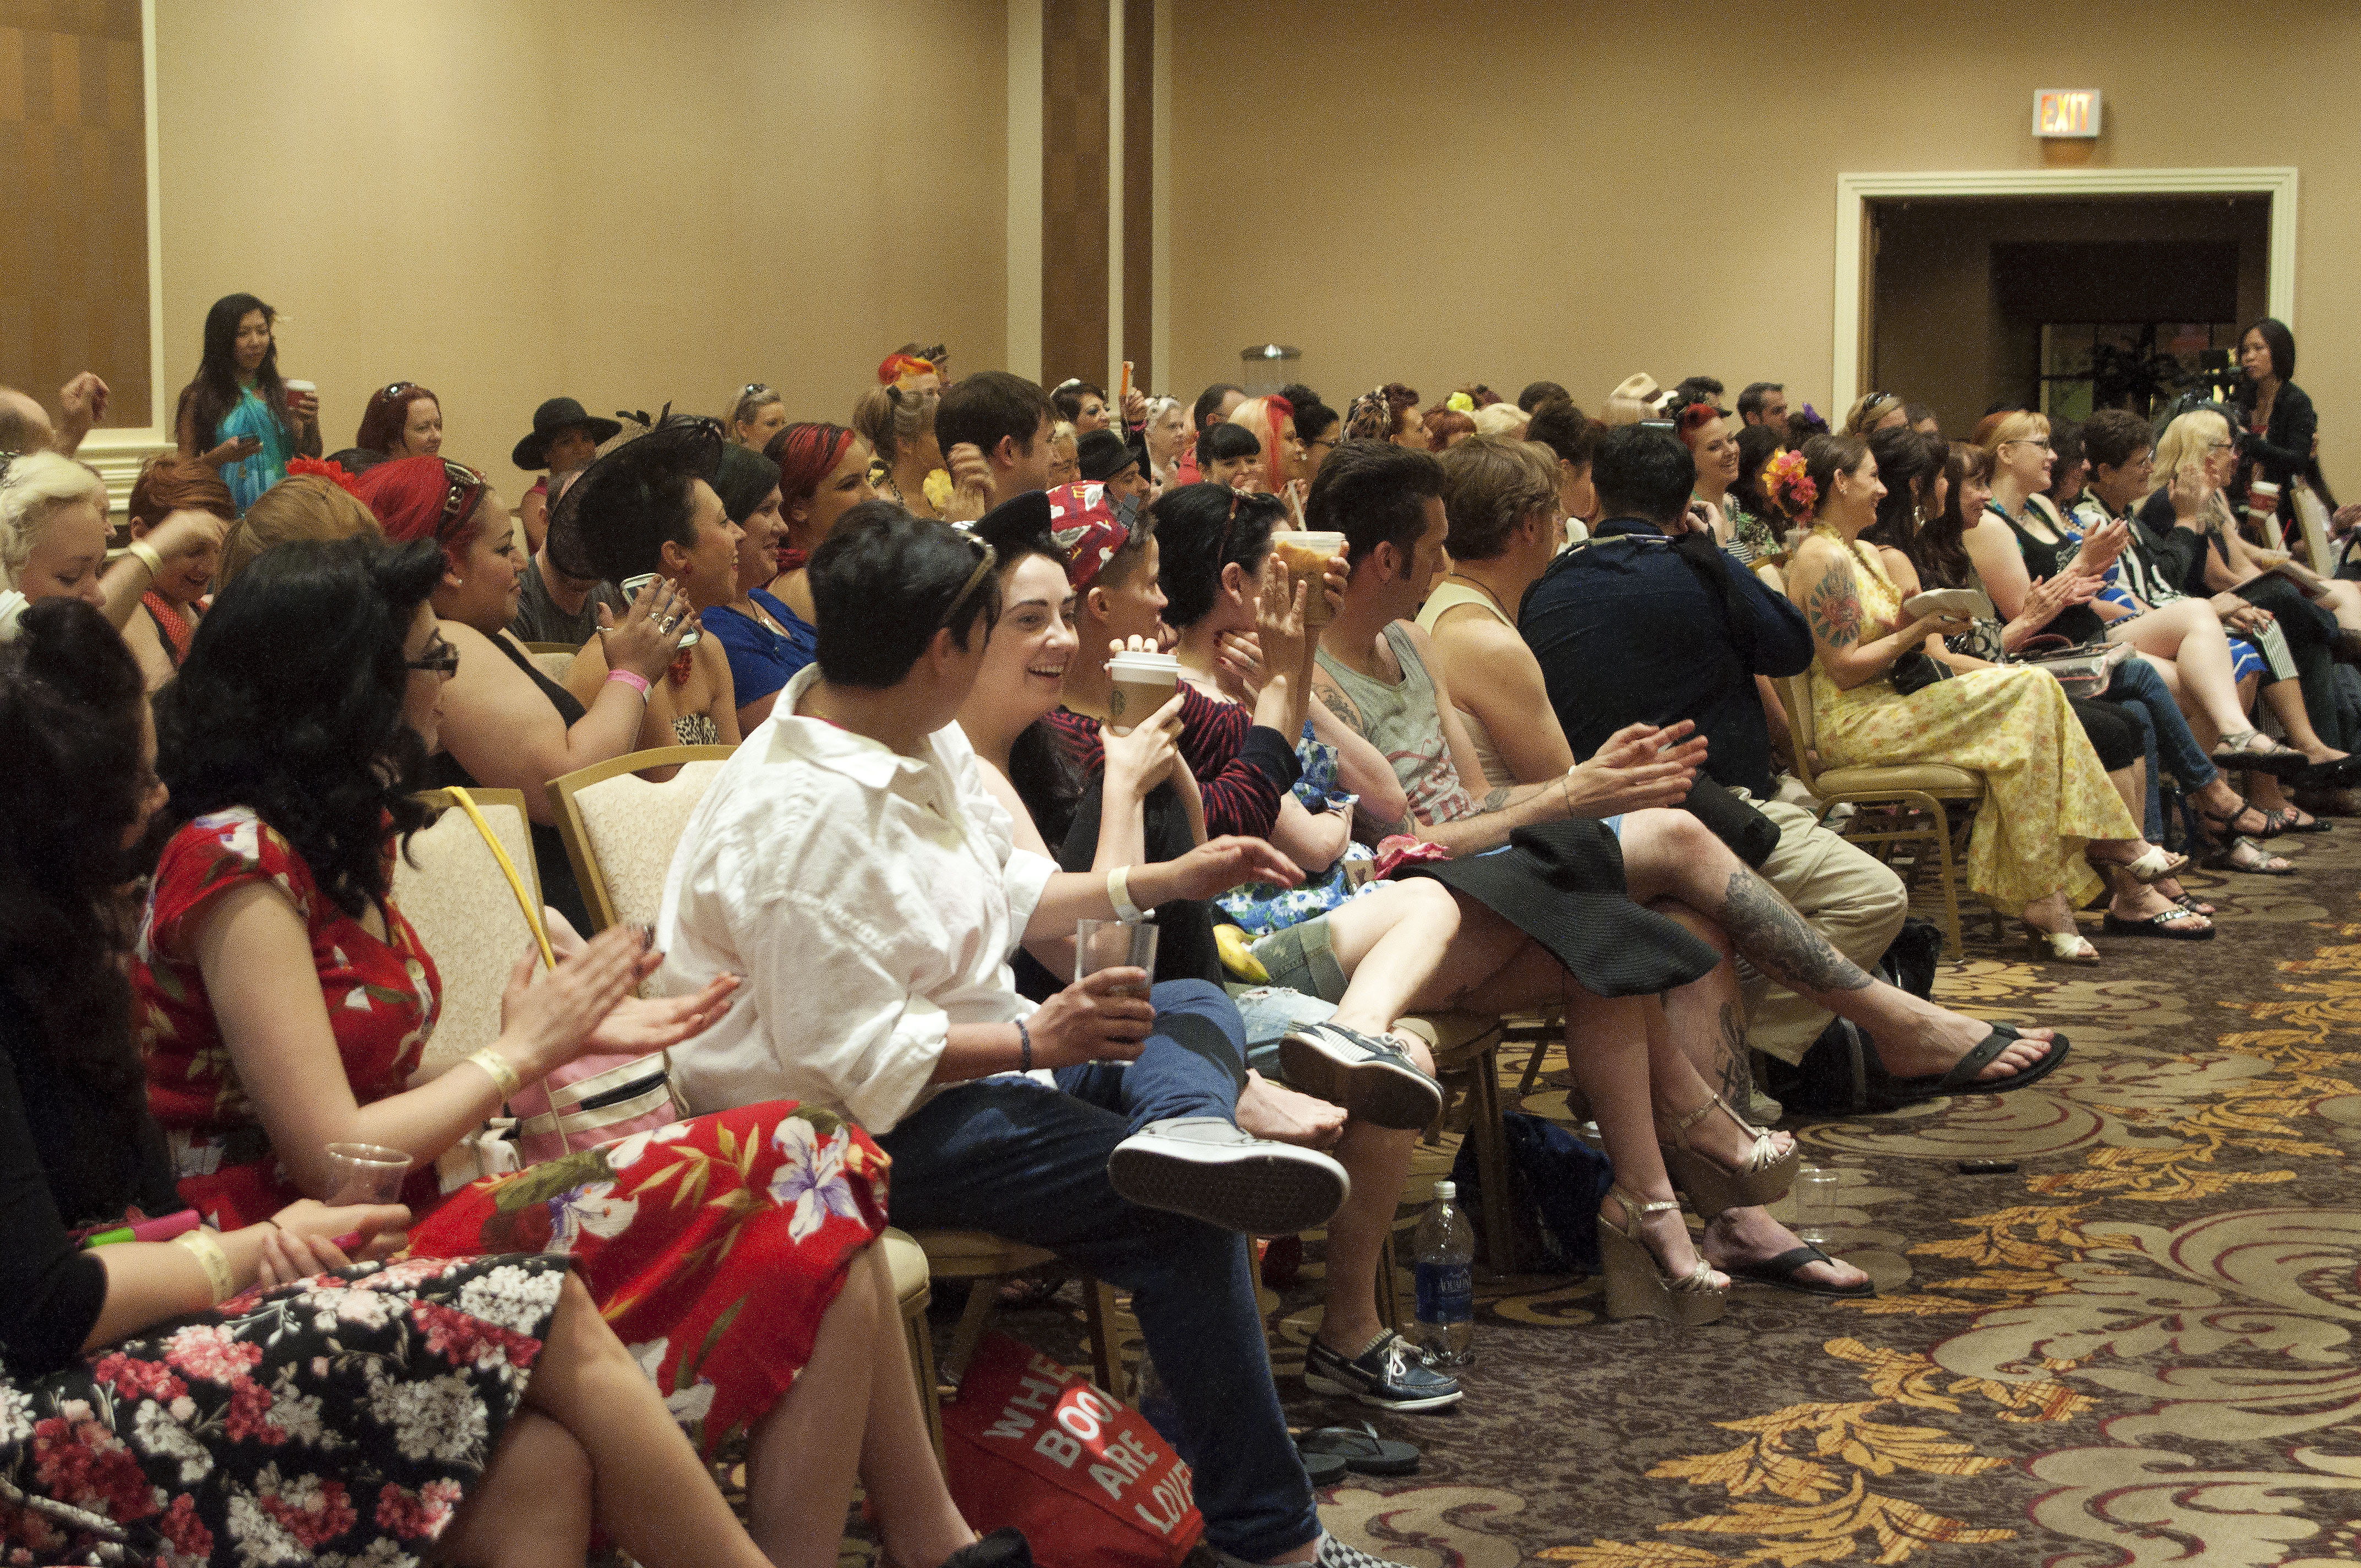 A packed house gathers early on Sunday morning to hear the Legends of Burlesque tell their stories at the Legend Panel